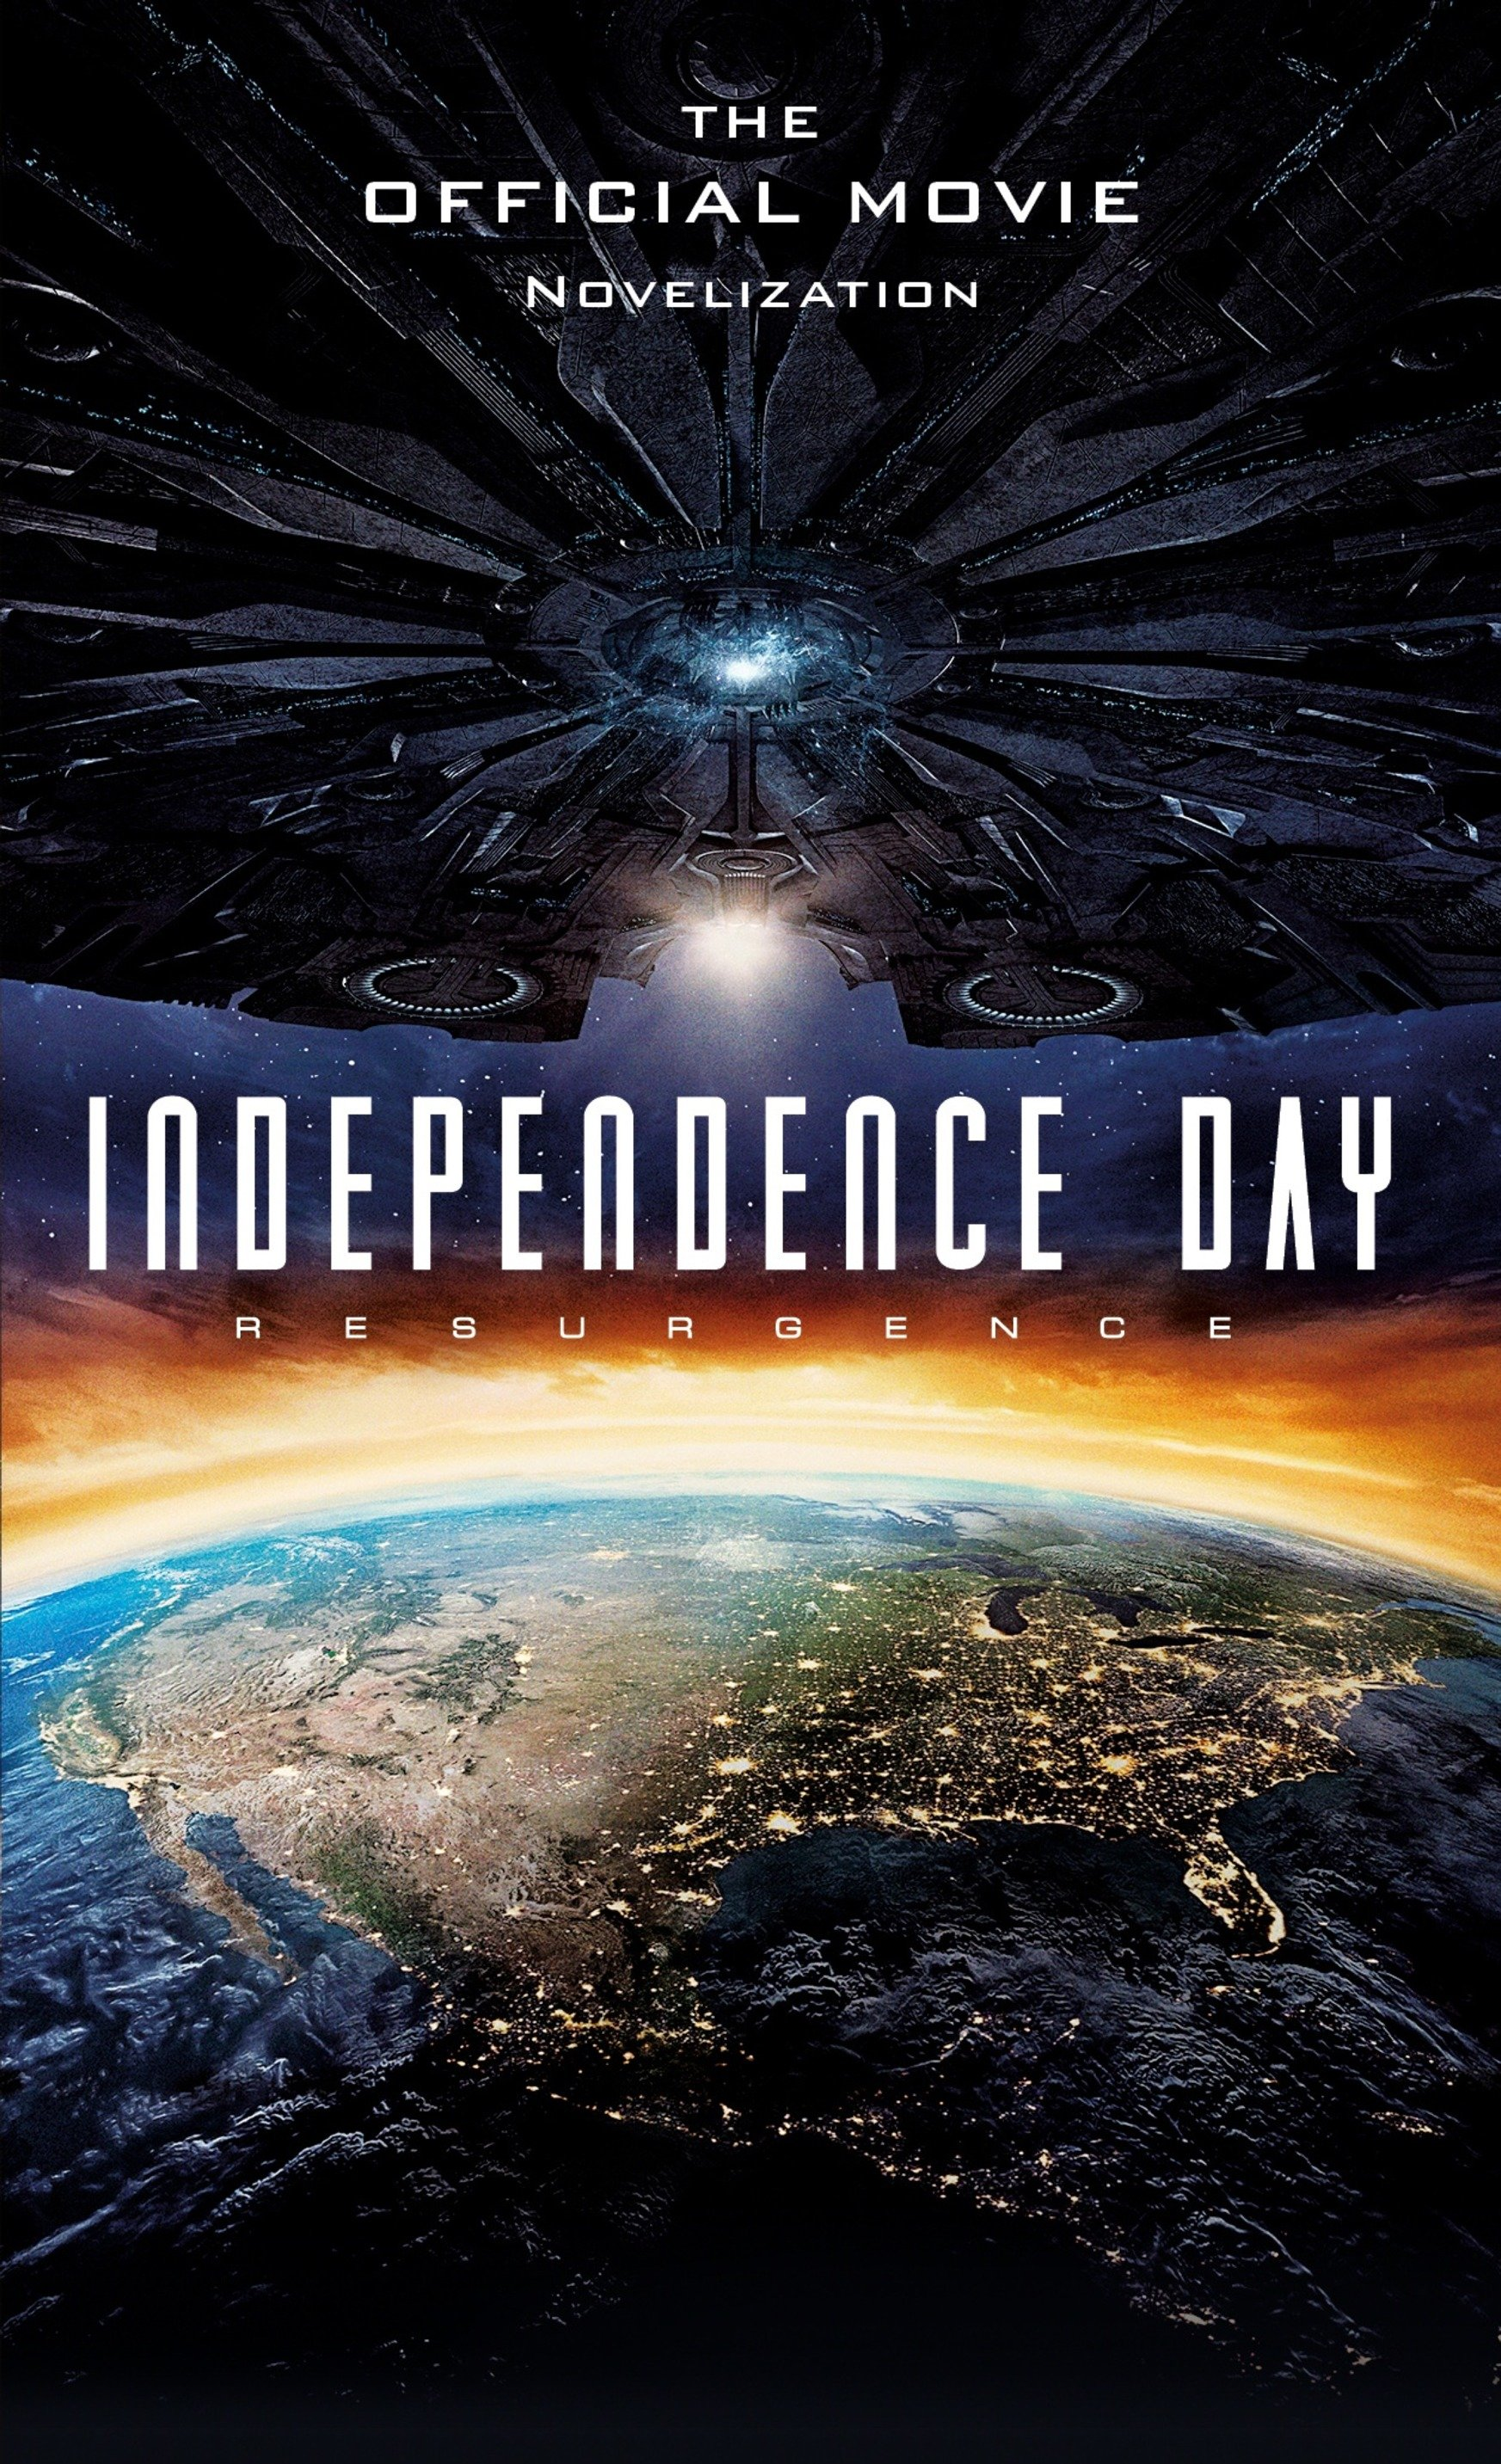 Independence day:  resurgence cover image